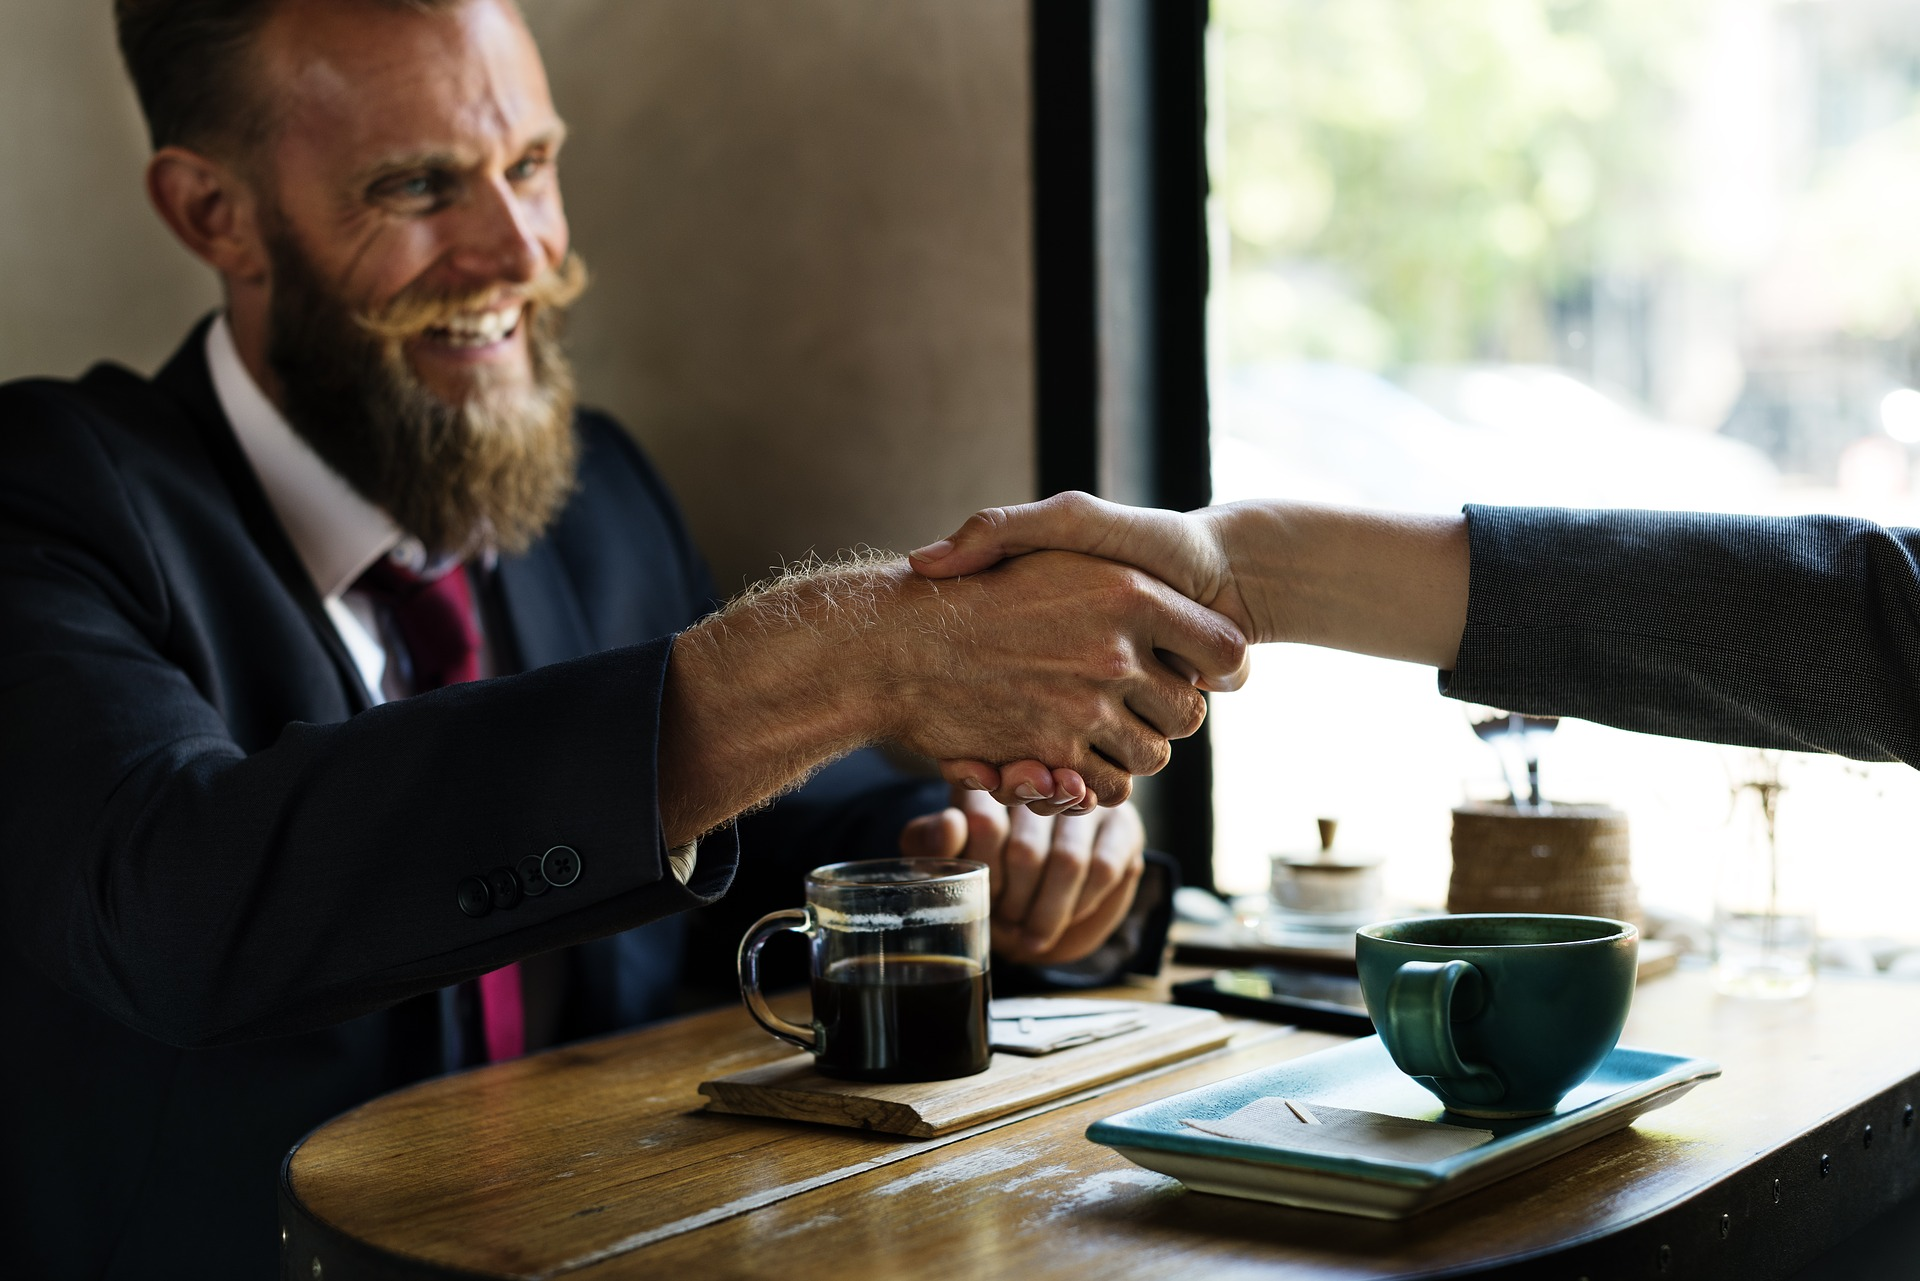 Business Negotiation Tactic - Give What You Get